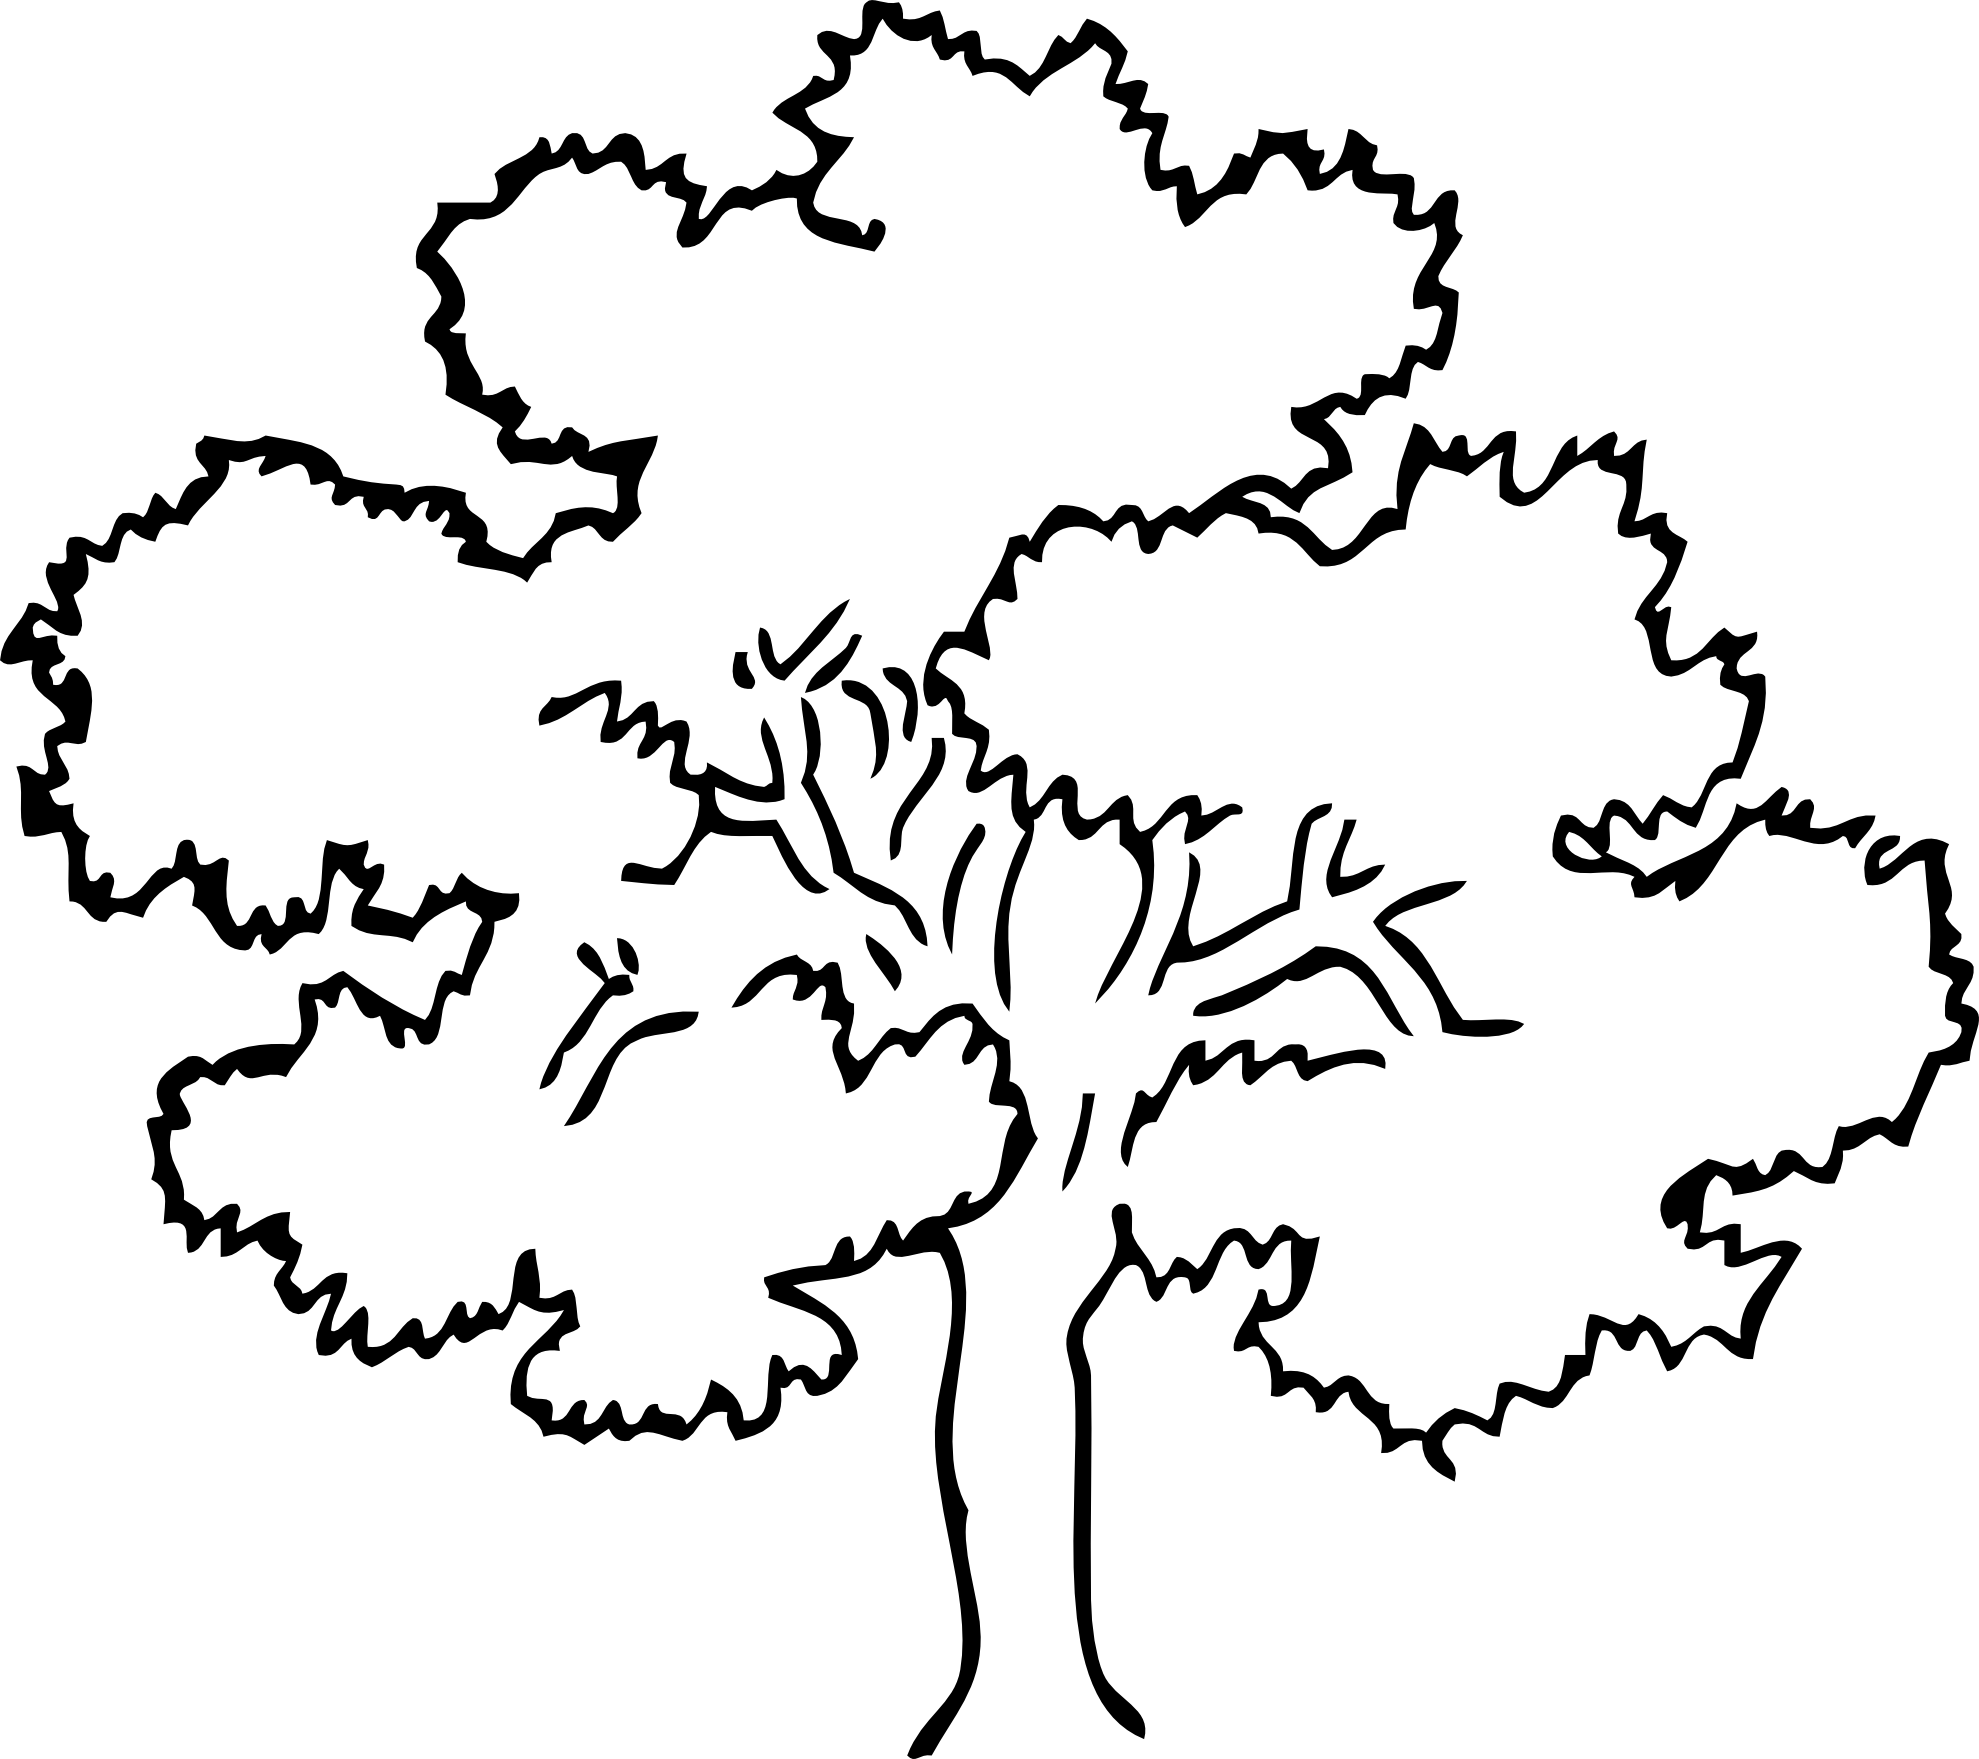 Free clipart images black and white tree image transparent download Free Oak Tree Clipart, Download Free Clip Art, Free Clip Art on ... image transparent download